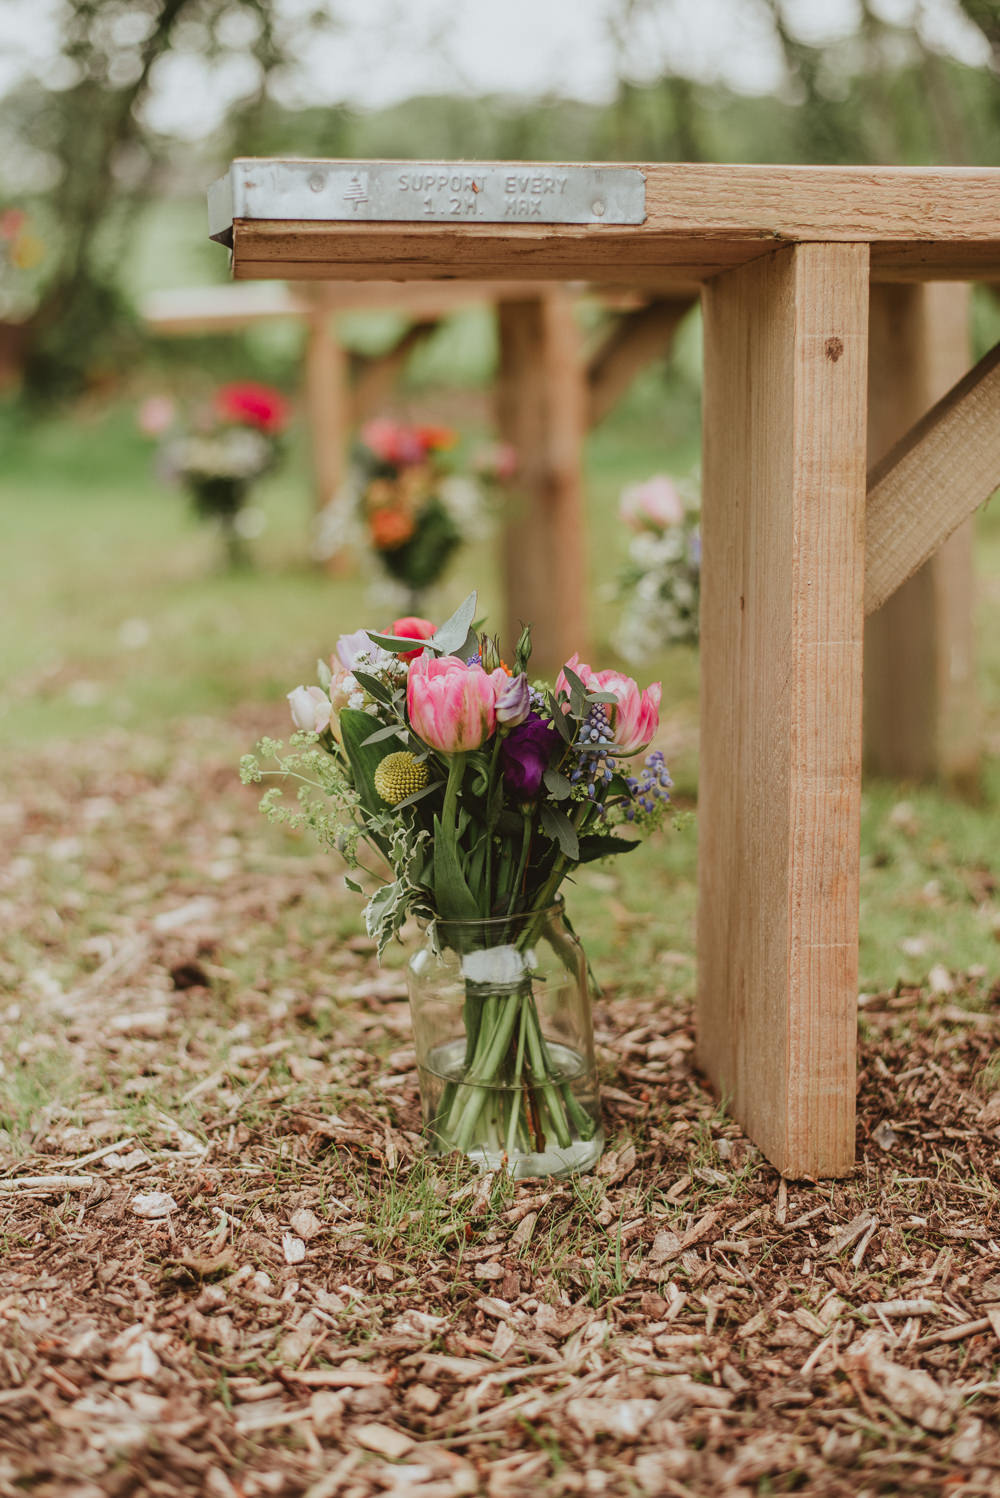 Colourful Aisle Flowers Outdoor Tulip Plush Tents Glamping Wedding Big Bouquet Photography